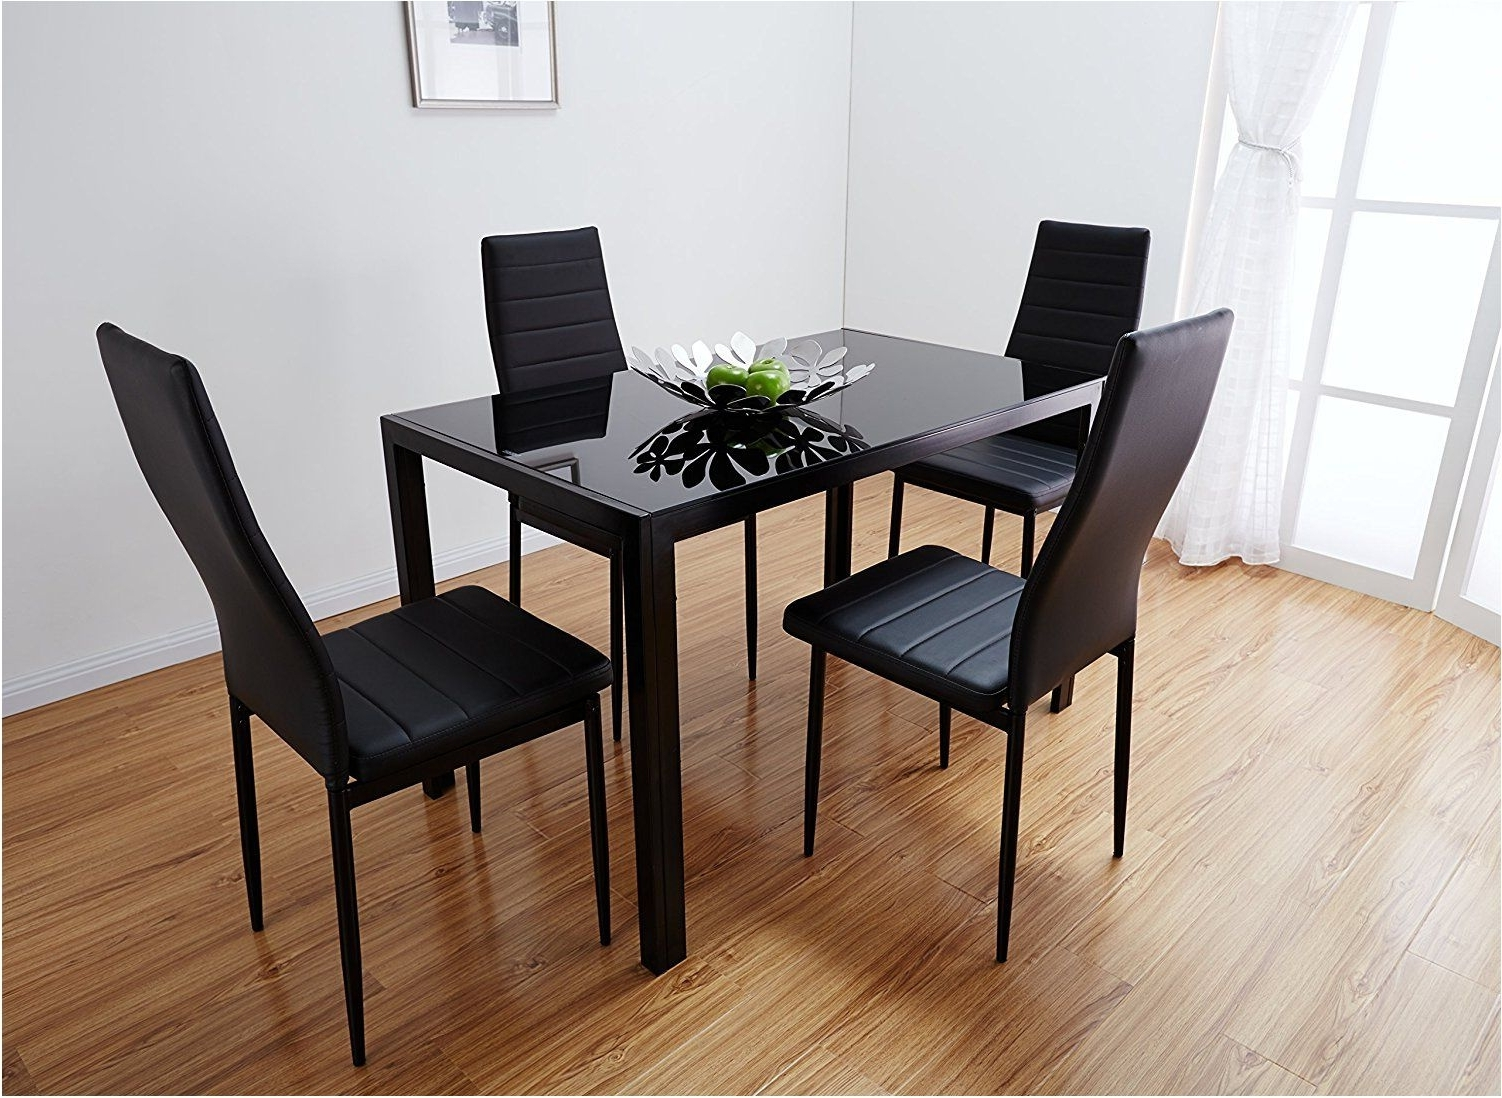 Newest 6 Seater Glass Dining Table Sets Inside Nice Black Glass Dining Table Set With 4 Faux Leather Chairs Brand (View 15 of 25)